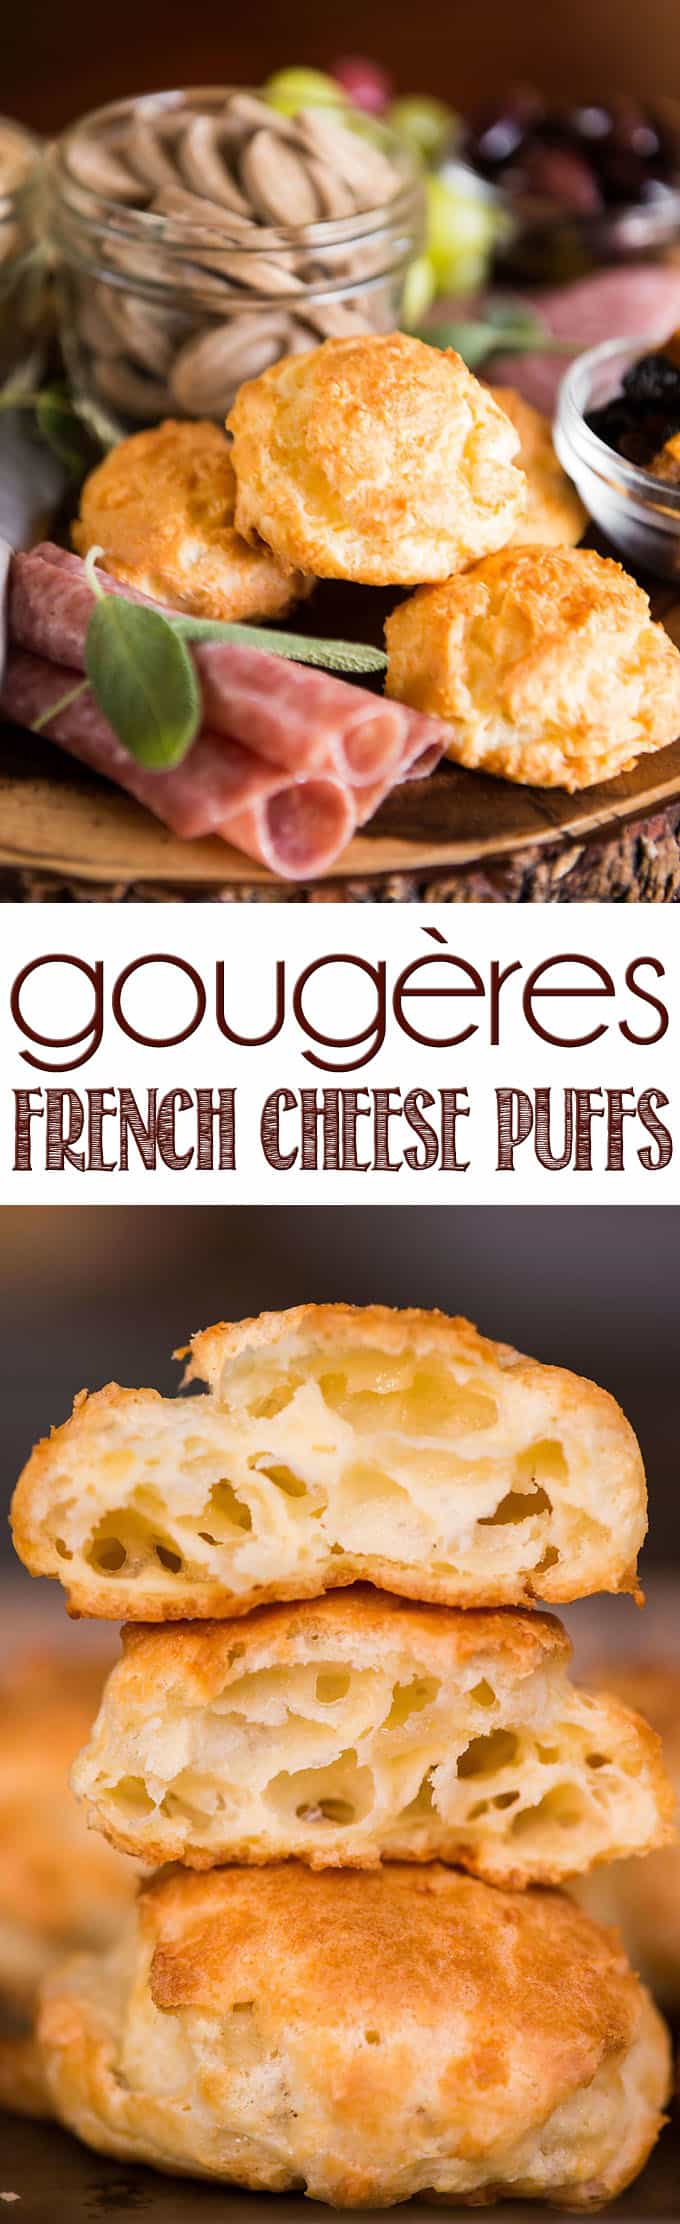 Gougères are French cheese puffs that are light and airy with a crisp outside. Made from scratch, they are great as an appetizer or served with a meal.